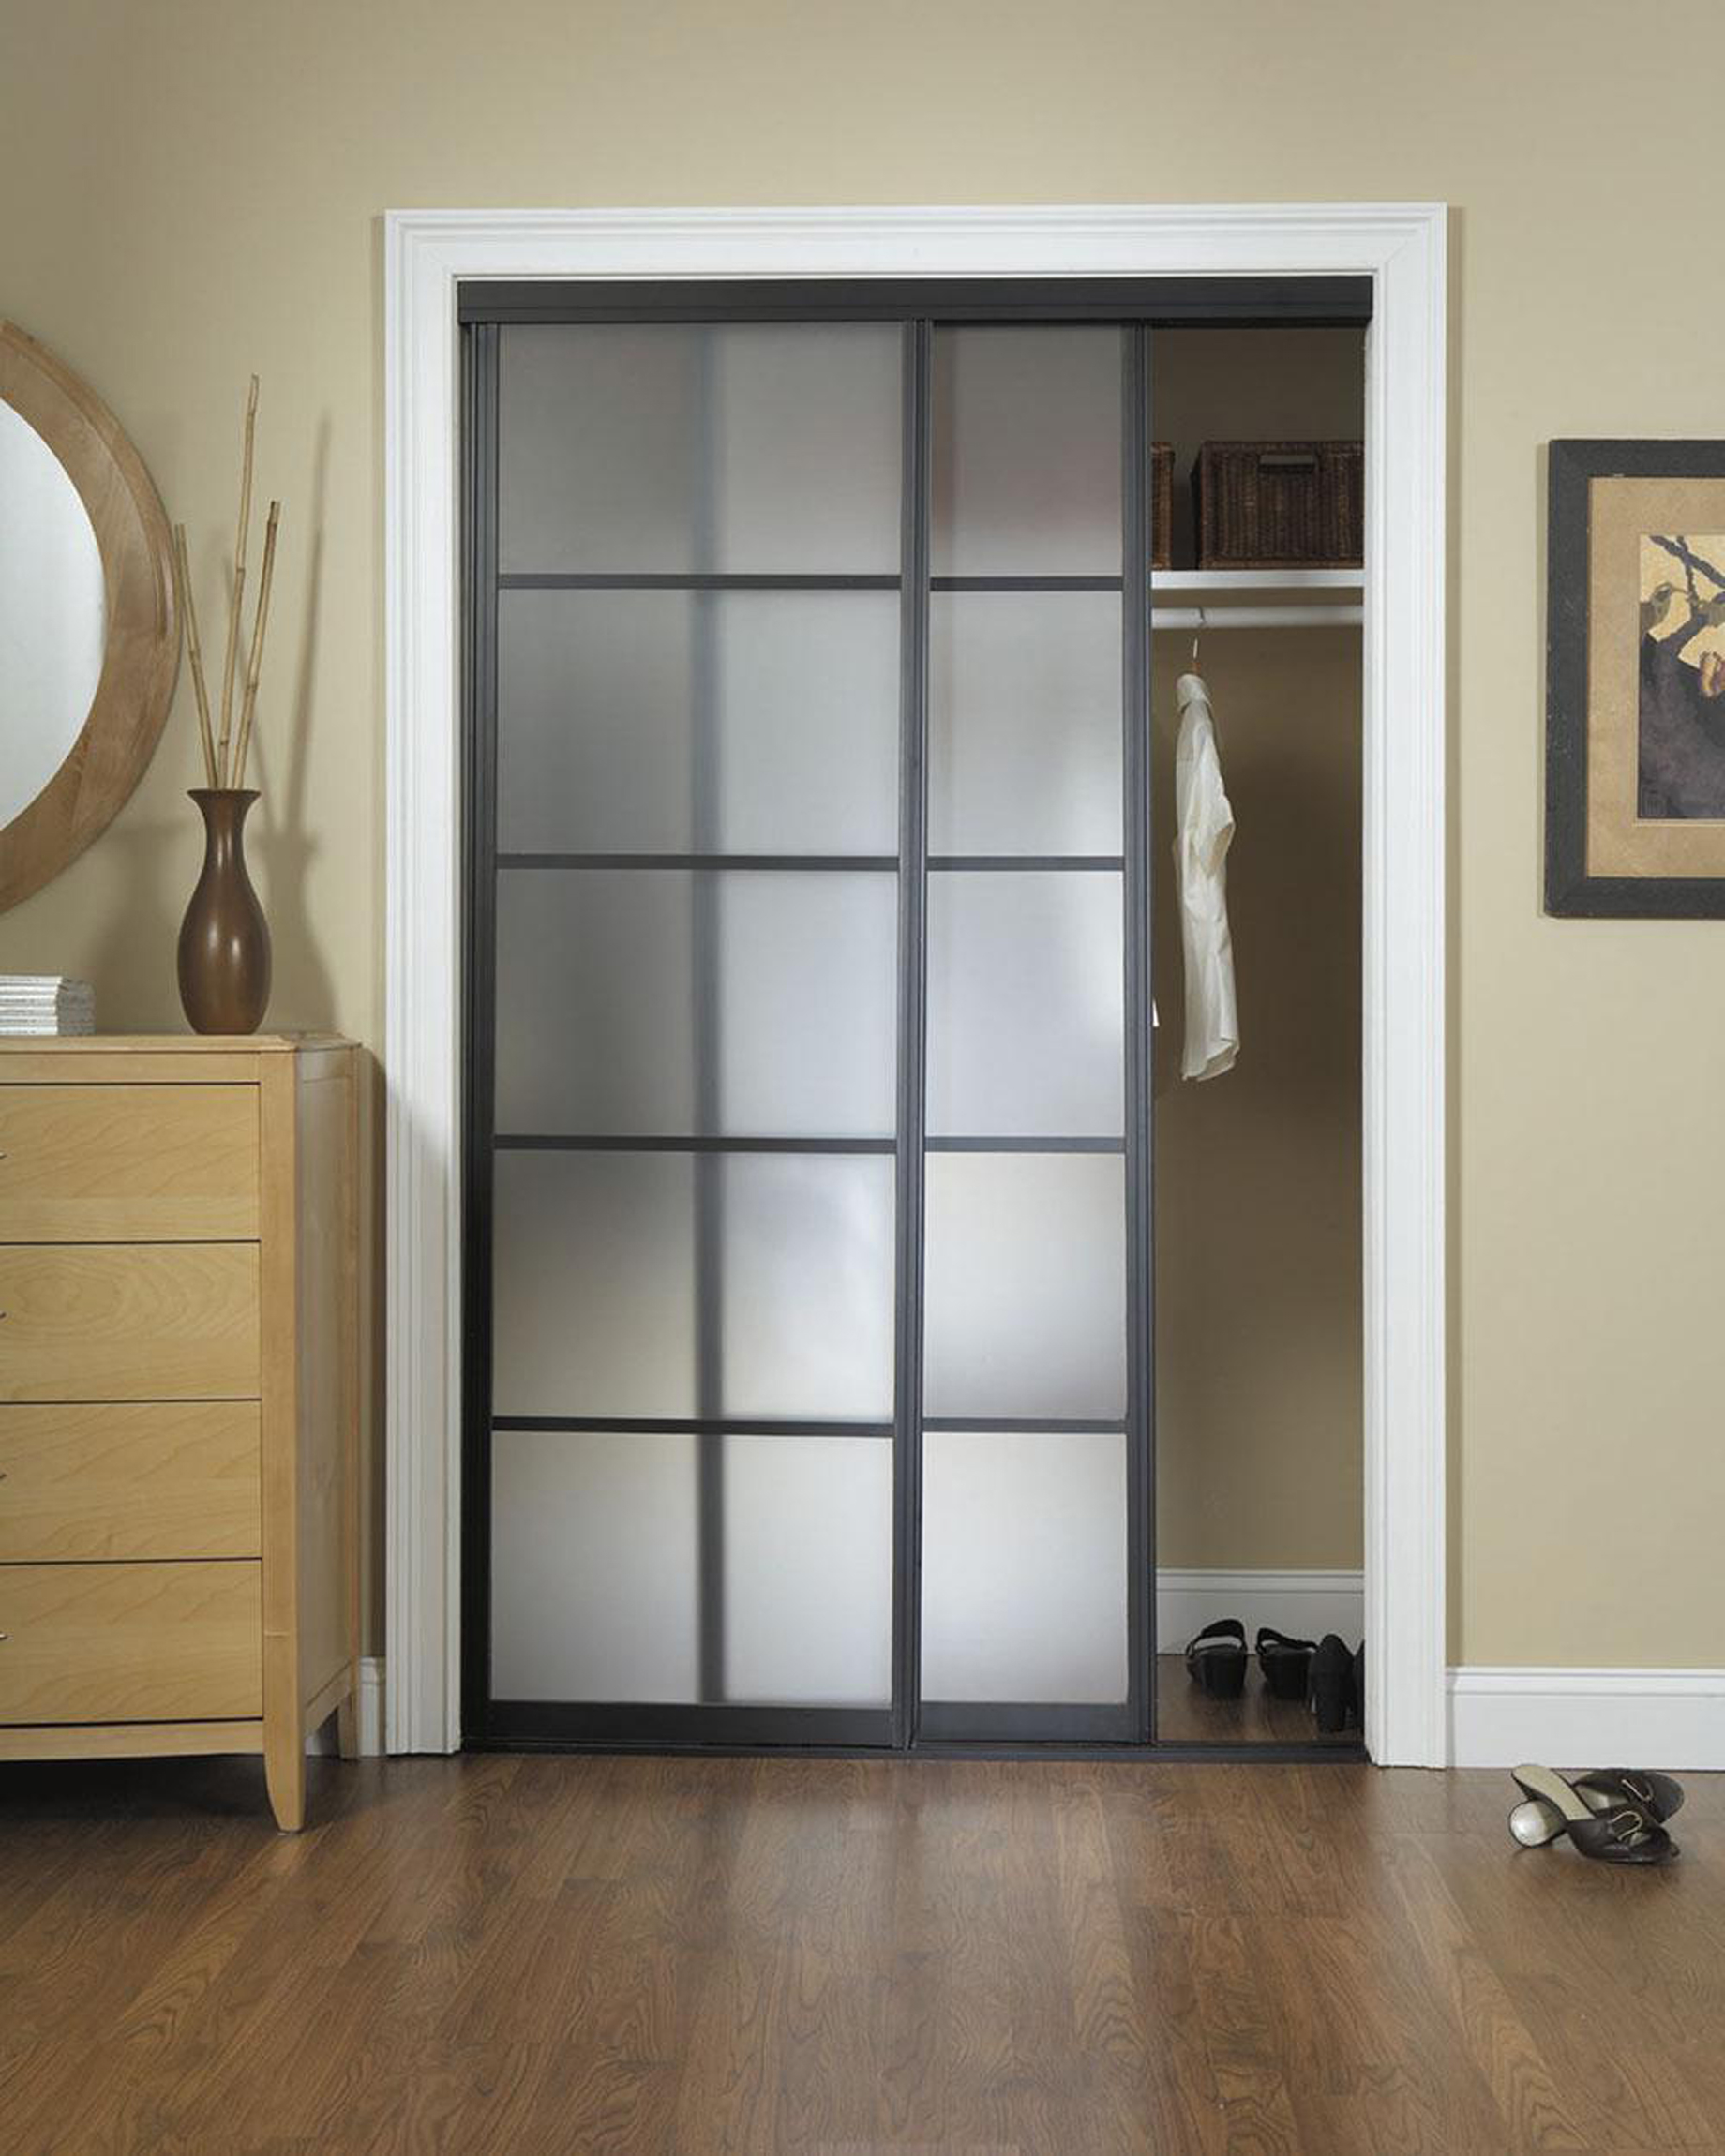 Minimalist Ikea Bedroom Closets Using Wardrobe Closets For Your Inspirtaions Top Notch Design Ideas Of Ikea Bedroom Closets (View 8 of 25)